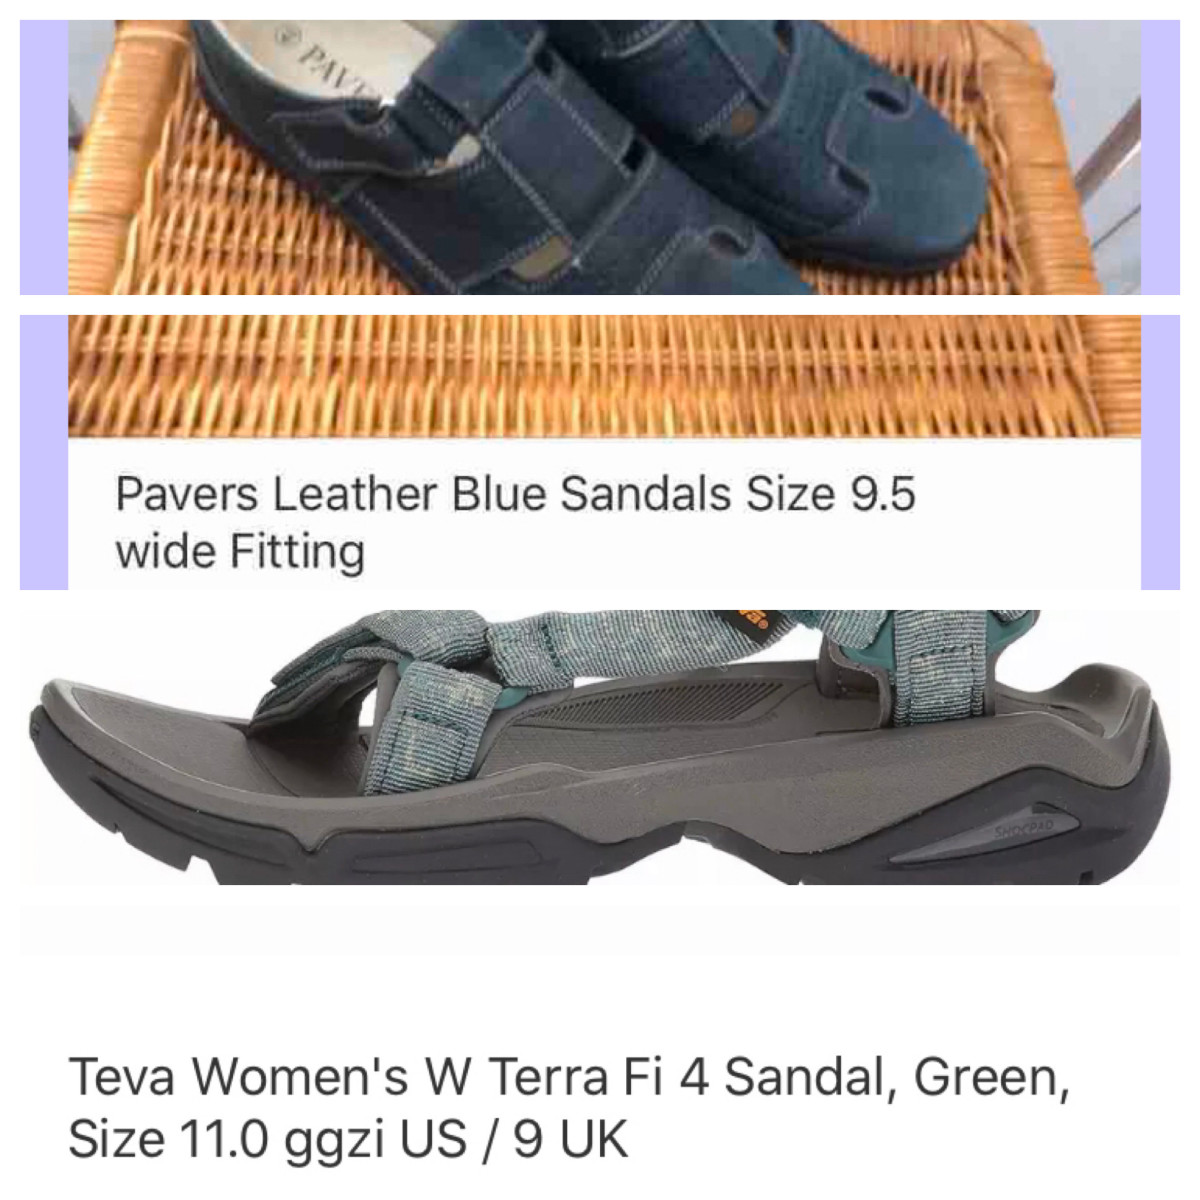 There are many kinds of sandals and this compromised image shows two contrasting types from comfortable summer shoes to trainer sandals